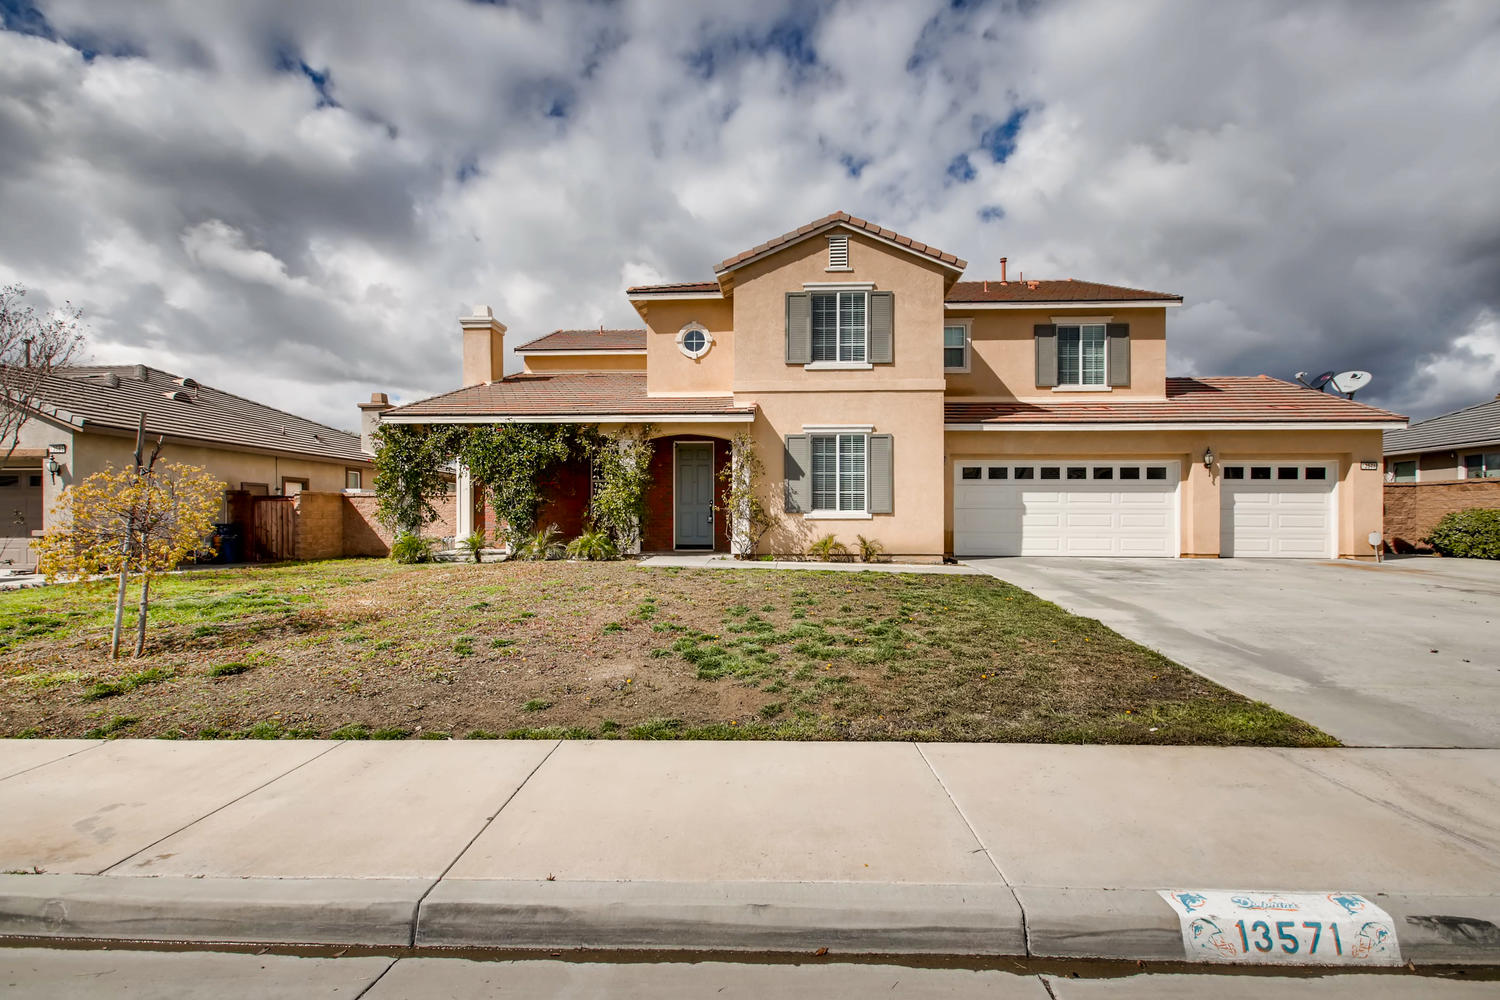 Photo of 13571 Altivo St Moreno Valley, CA, 92555